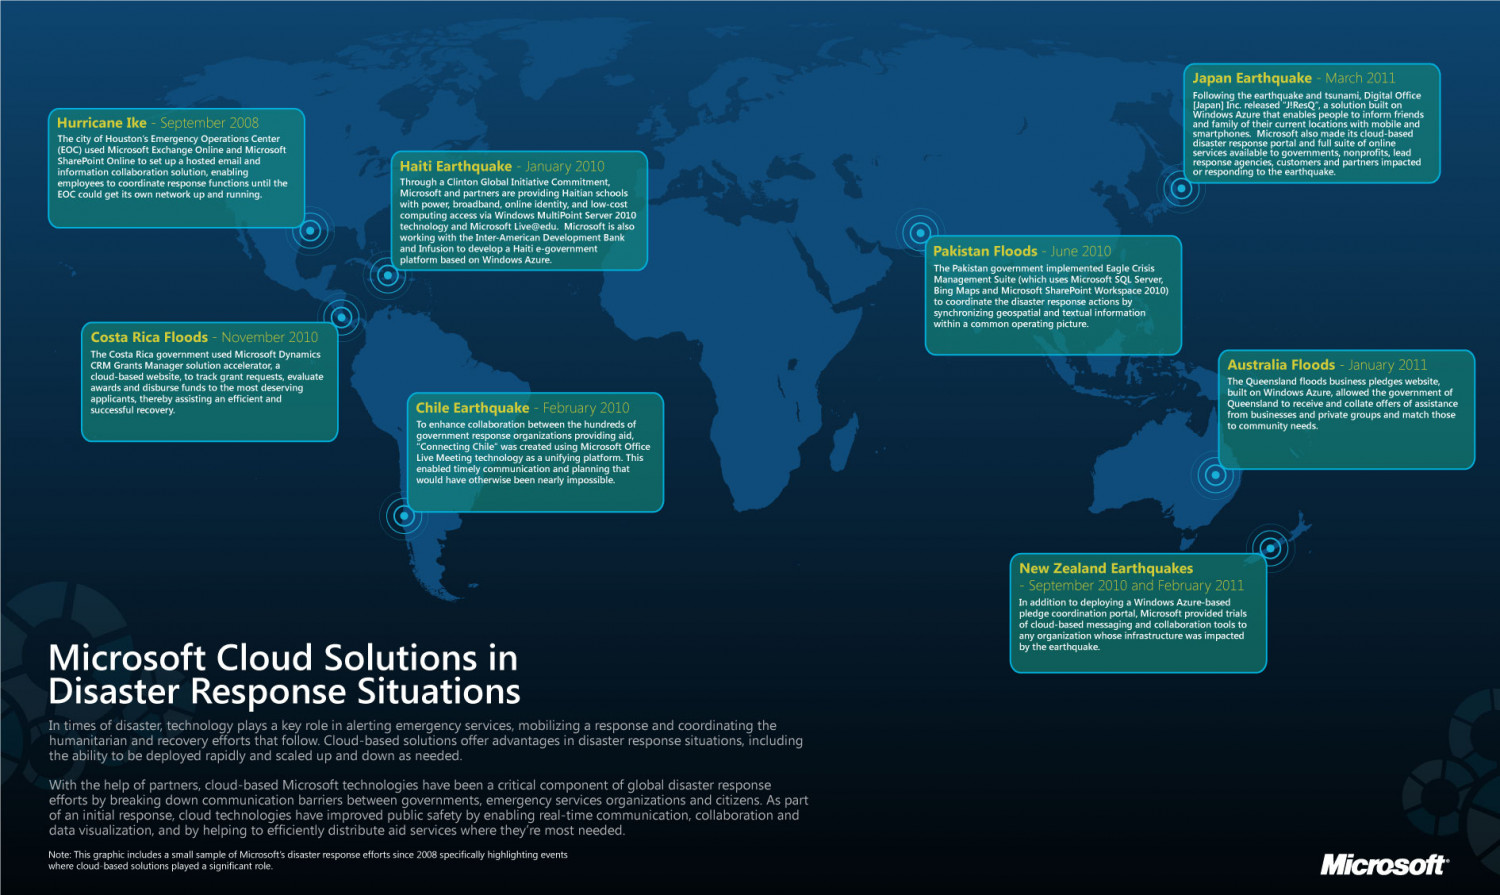 Microsoft Kicks off Public Safety Symposium with Focus on the Cloud Infographic